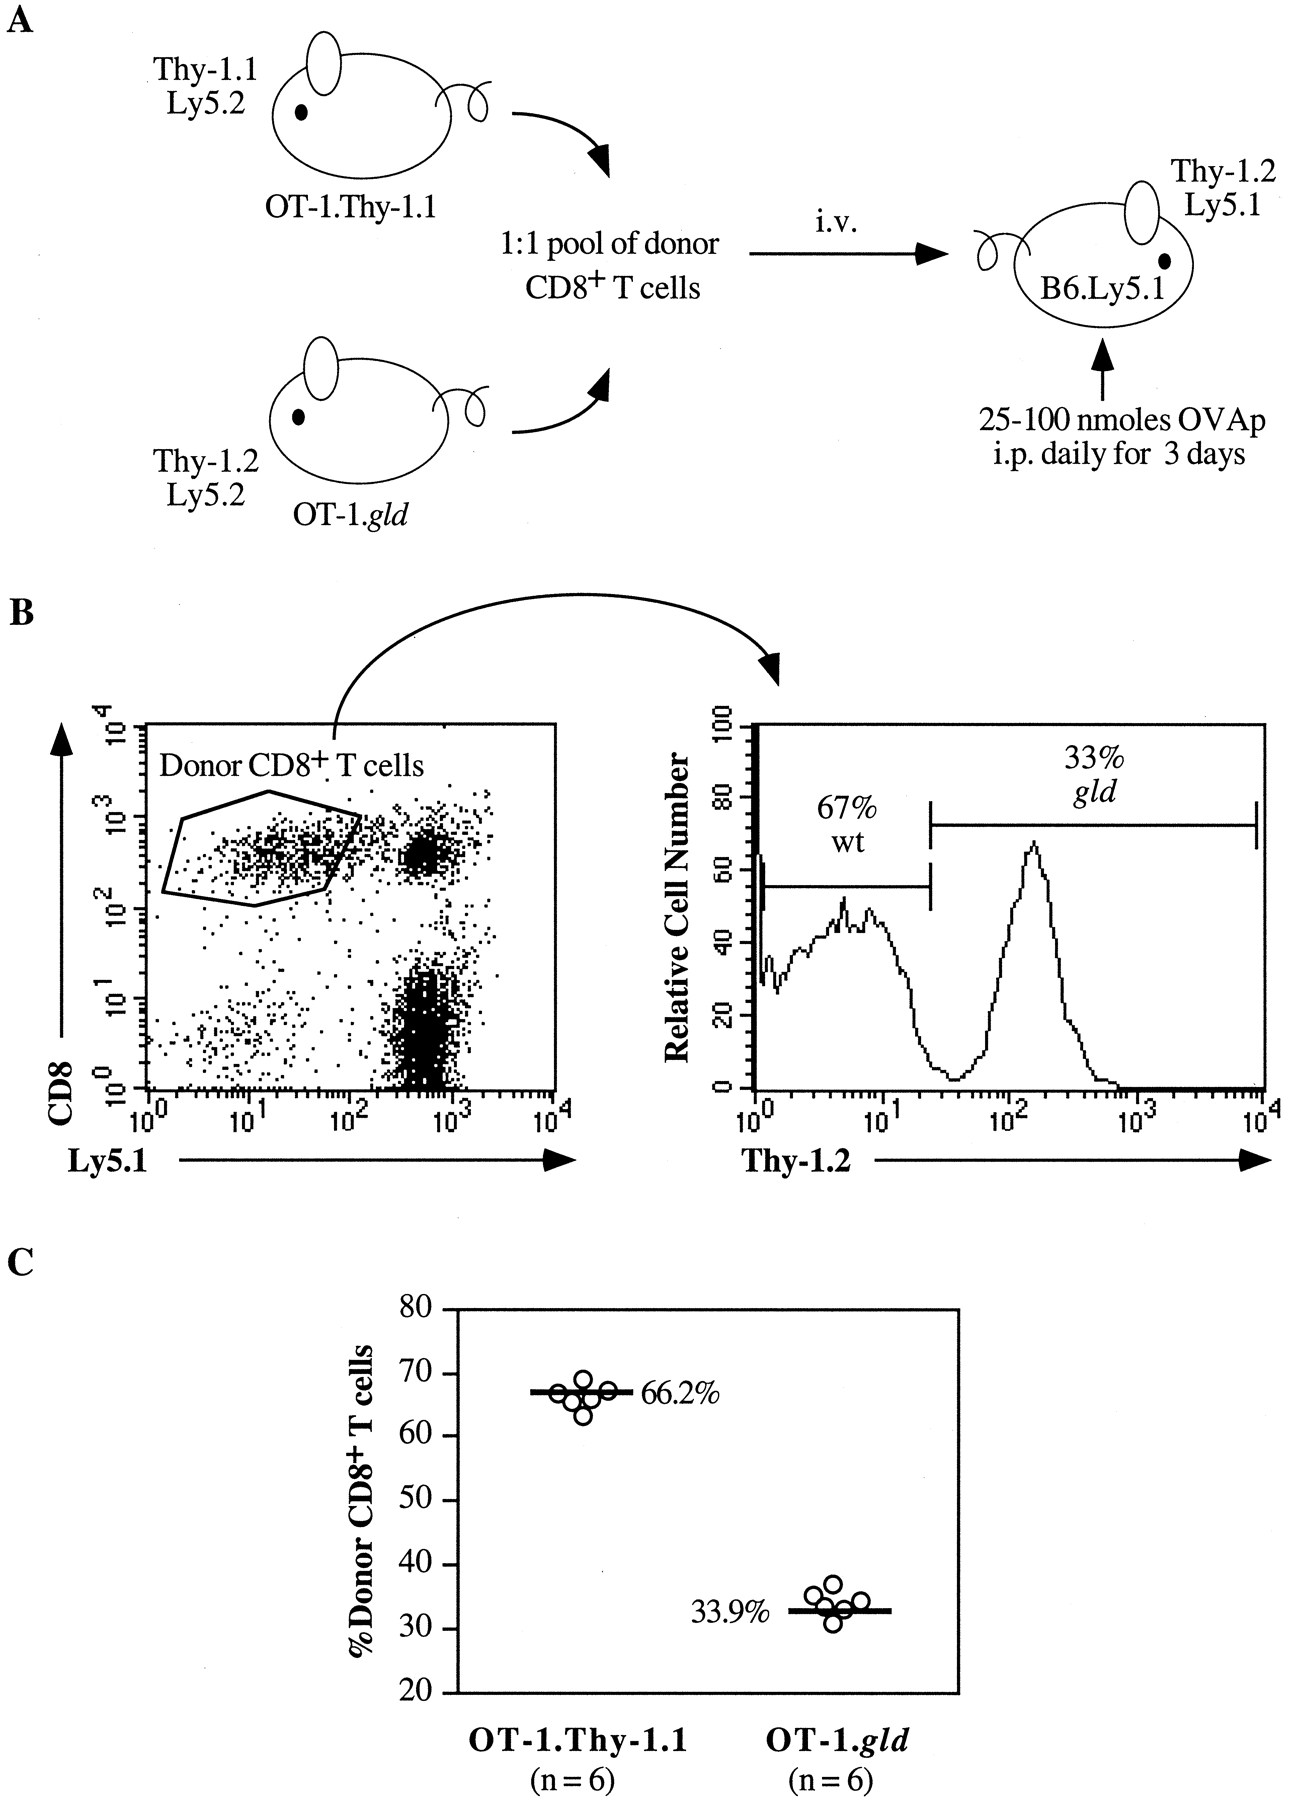 Fas Ligand Costimulates The In Vivo Proliferation Of Cd8 T Cells Circuit Diagram Cell Download Figure